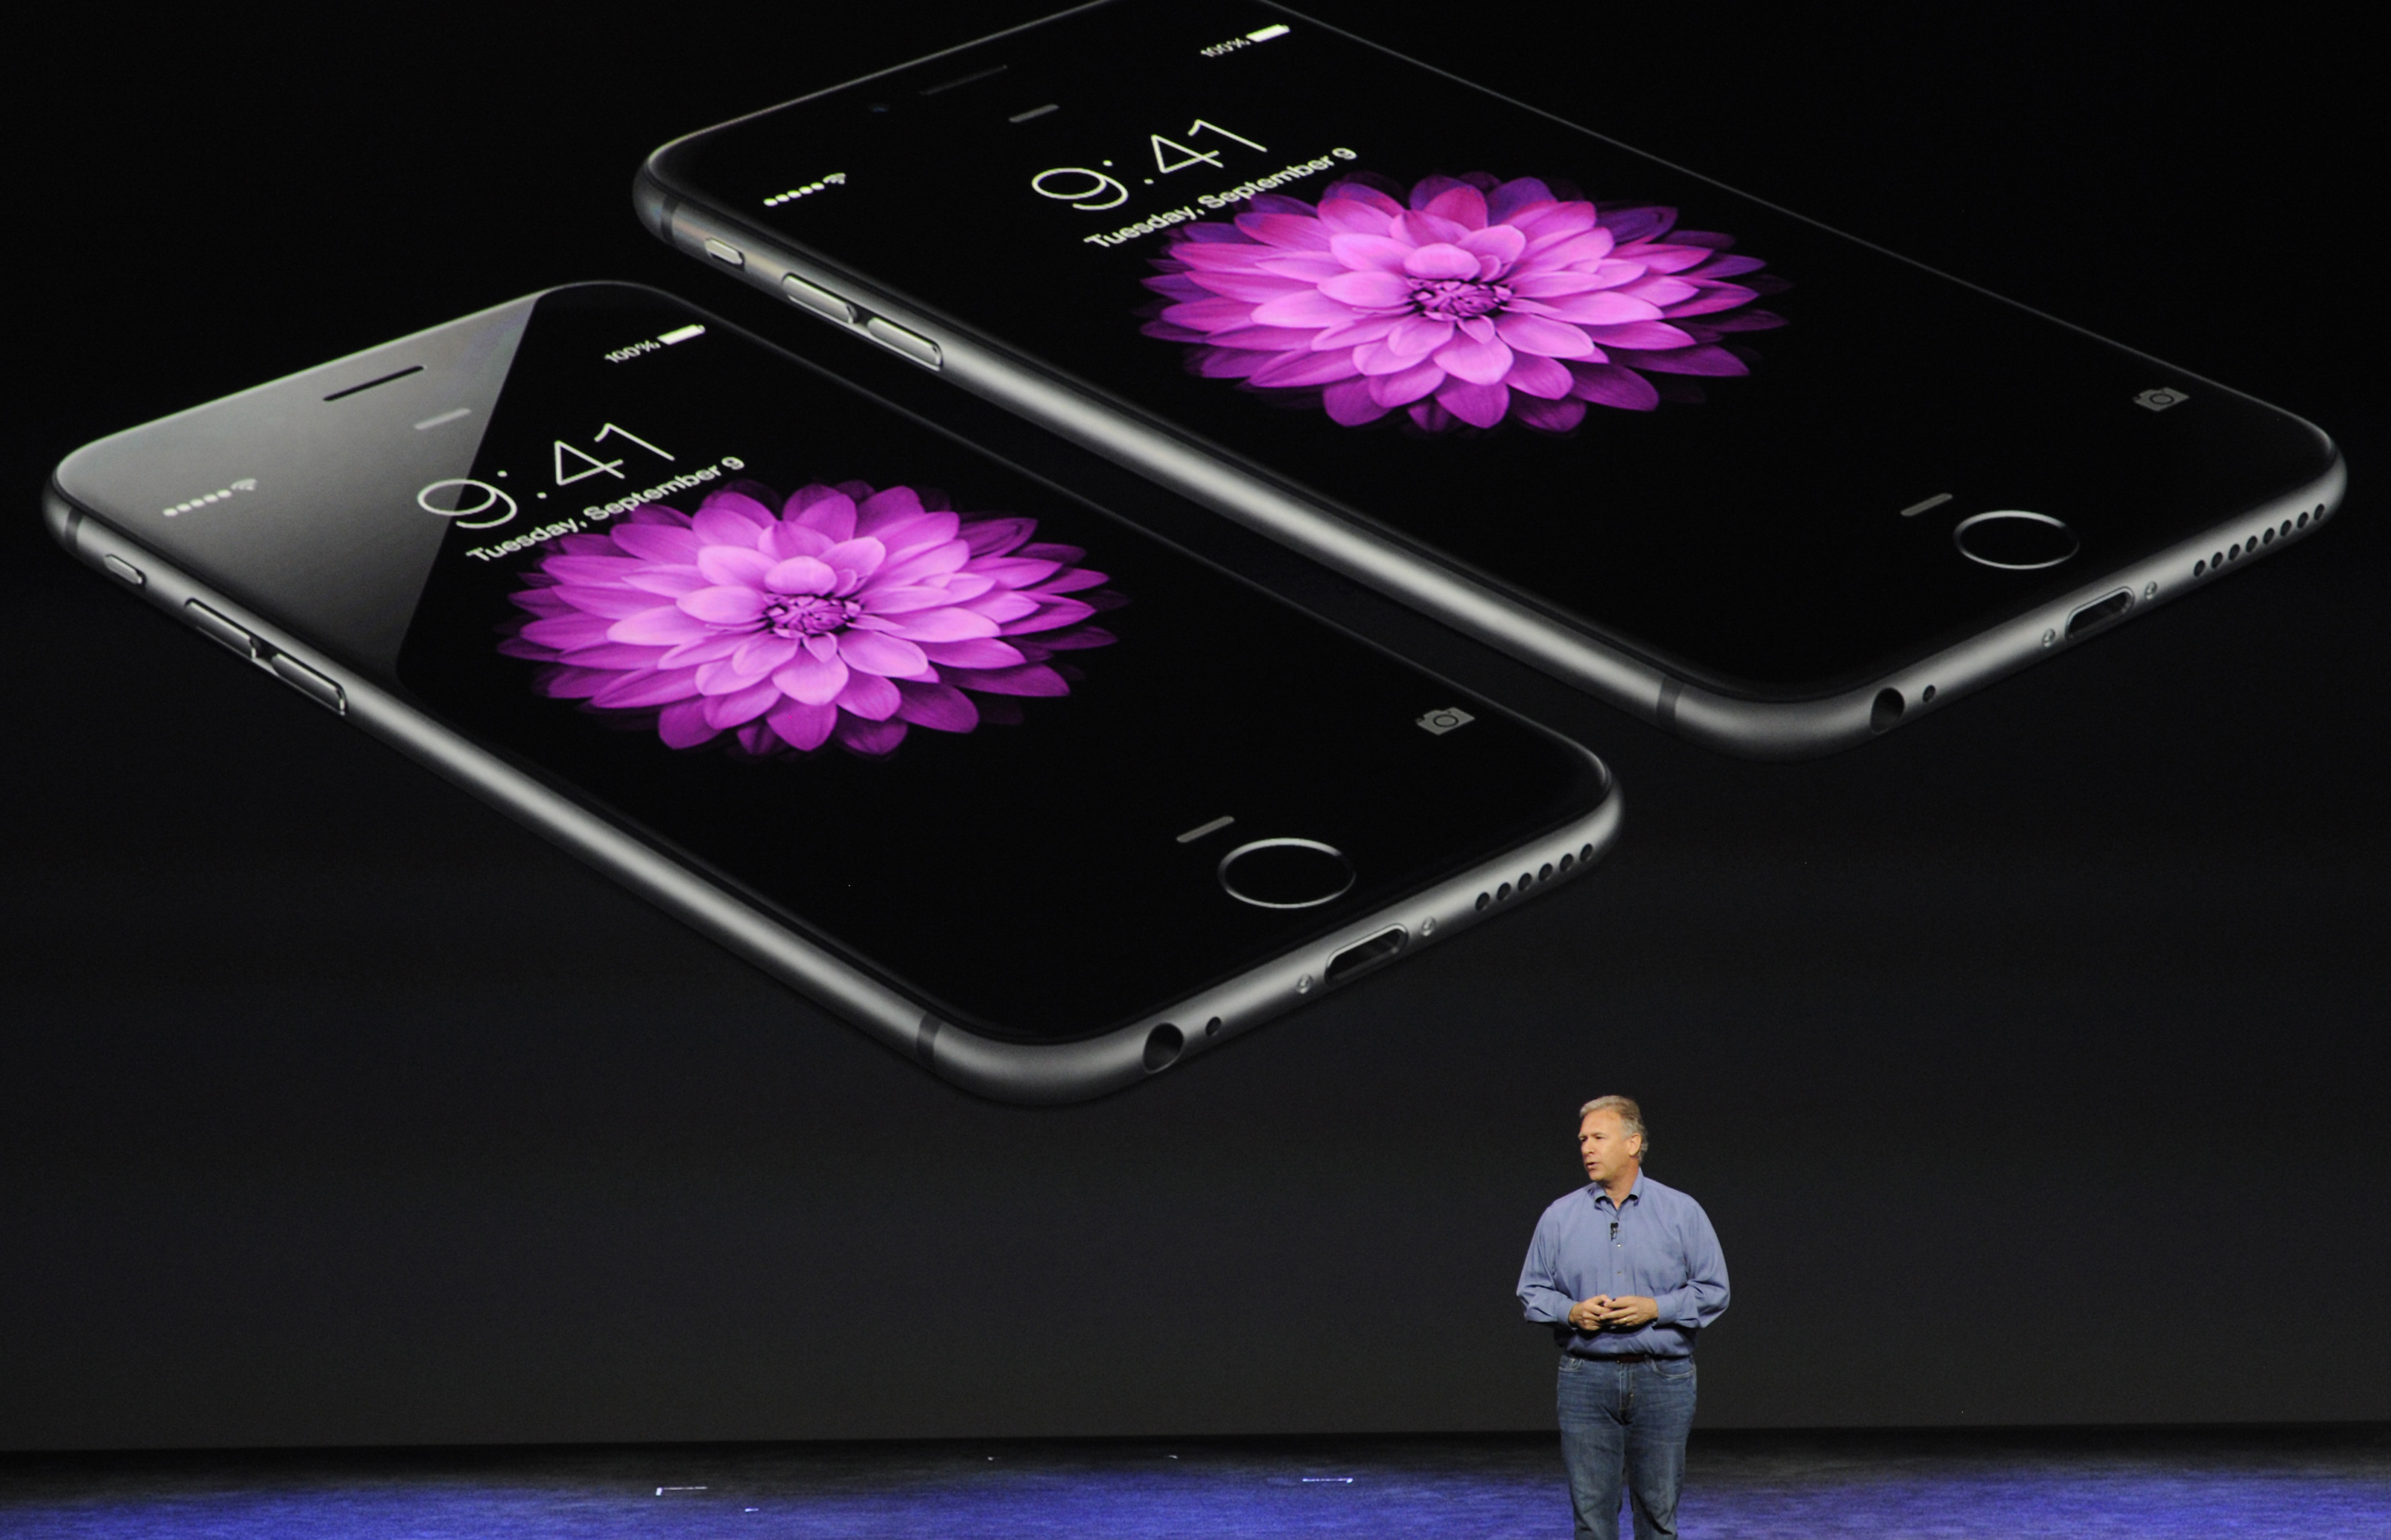 Philip  Phil  Schiller, senior vice president of worldwide marketing at Apple Inc., speaks about the iPhone 6 and iPhone 6 Plus during a product announcement at Flint Center in Cupertino, California, U.S., on Tuesday, Sept. 9, 2014.